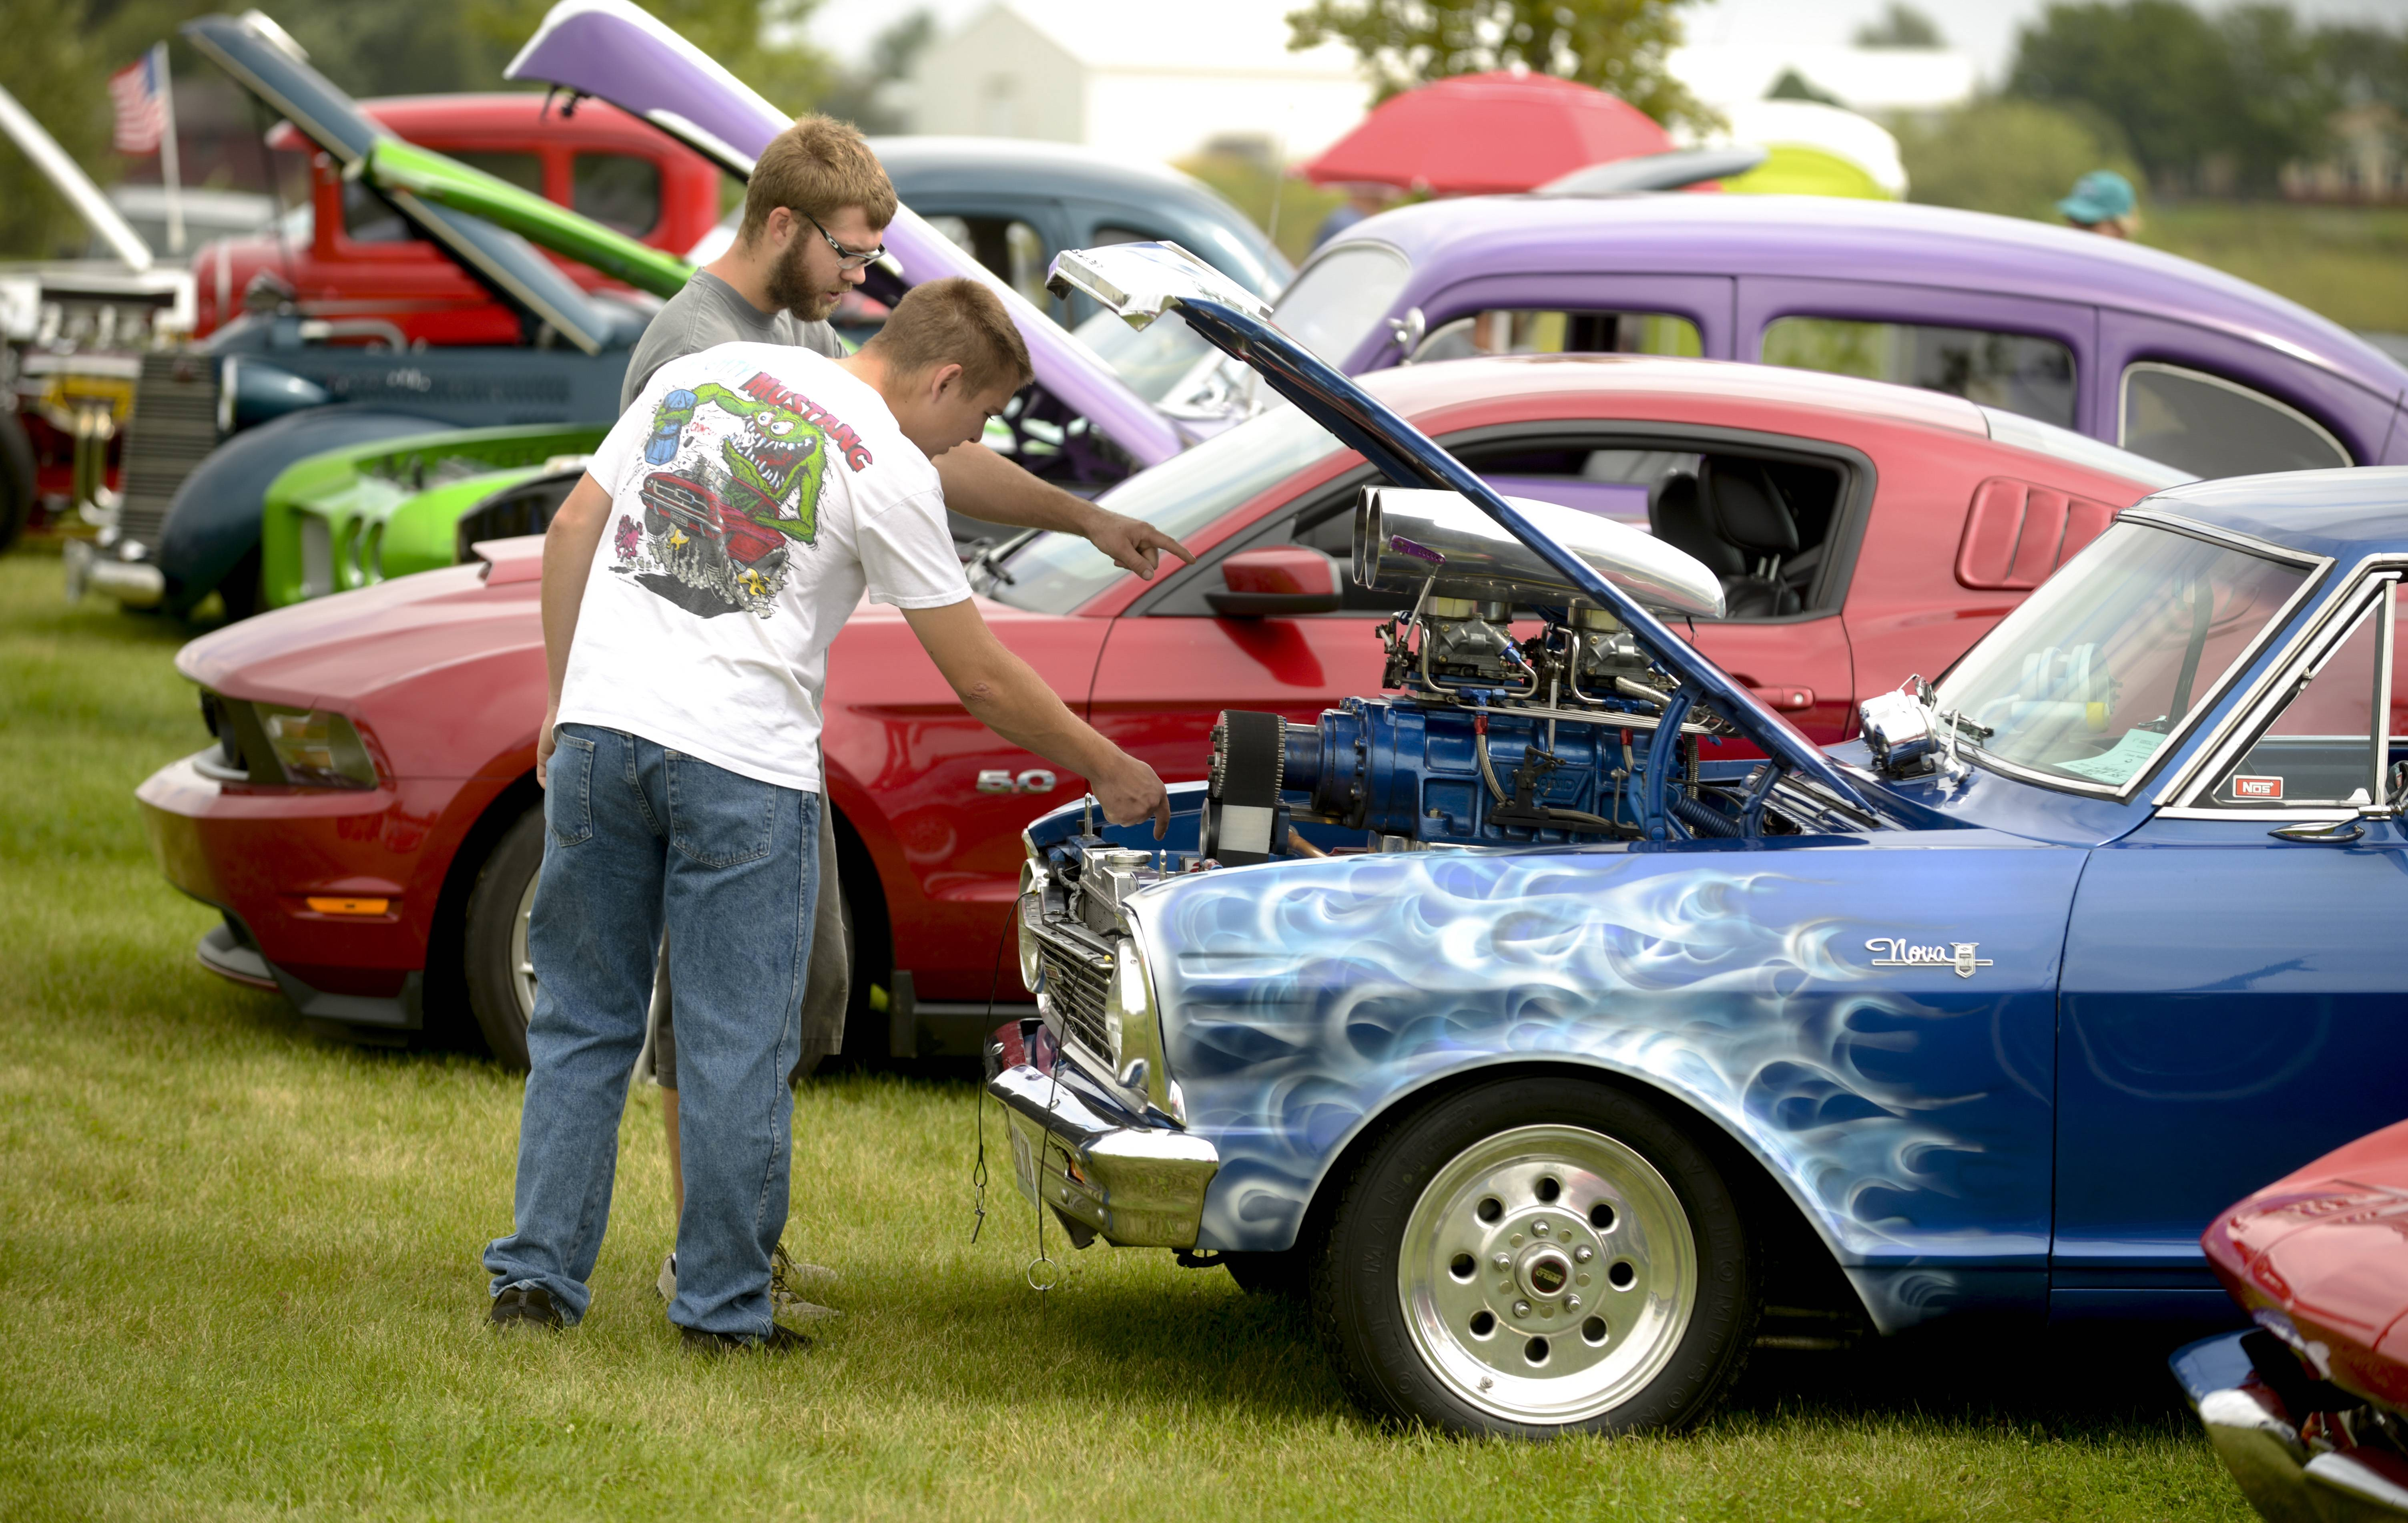 Hayden Senese and Evan Olson, of Sugar Grove, check out a souped up 1965 Chevy Nova at Kane County Sheriff Pat Perez's Eighth Annual Car and Motorcycle Show at the Martin family farm in Elburn.